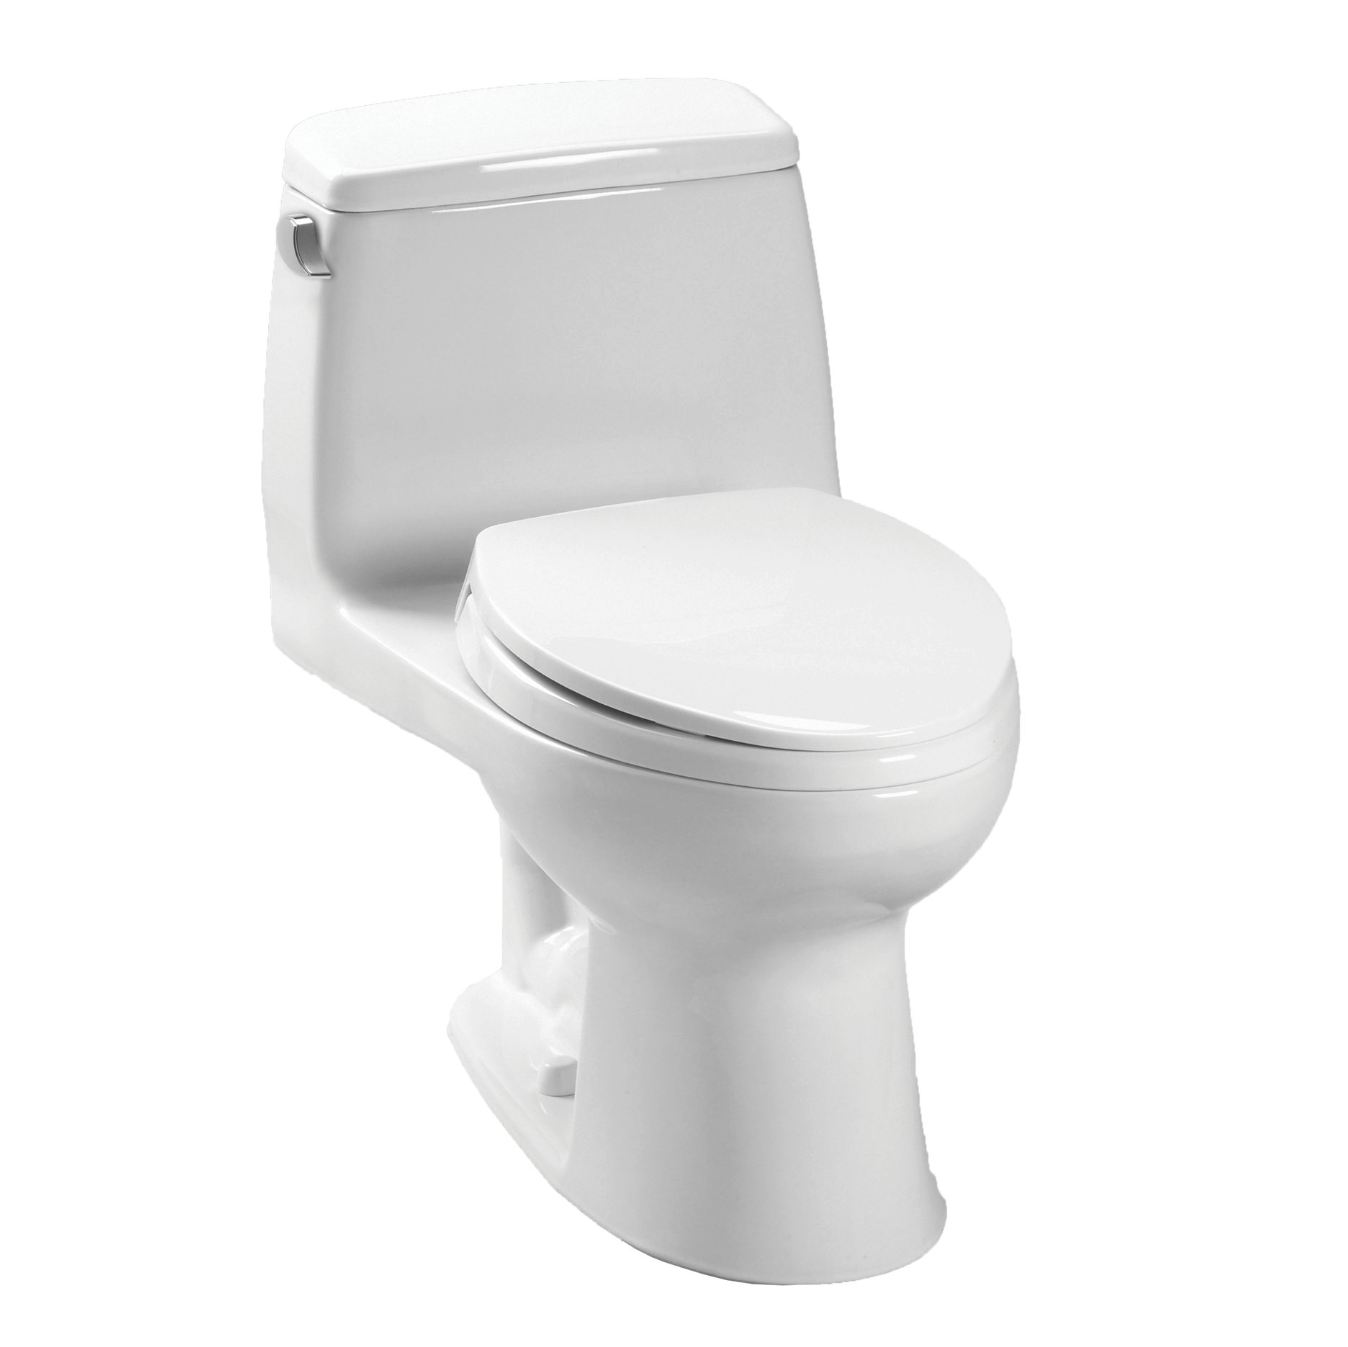 TOTO MS854114SL#01 UltraMax One-Piece Toilet - ADA Compliant – Mega ...